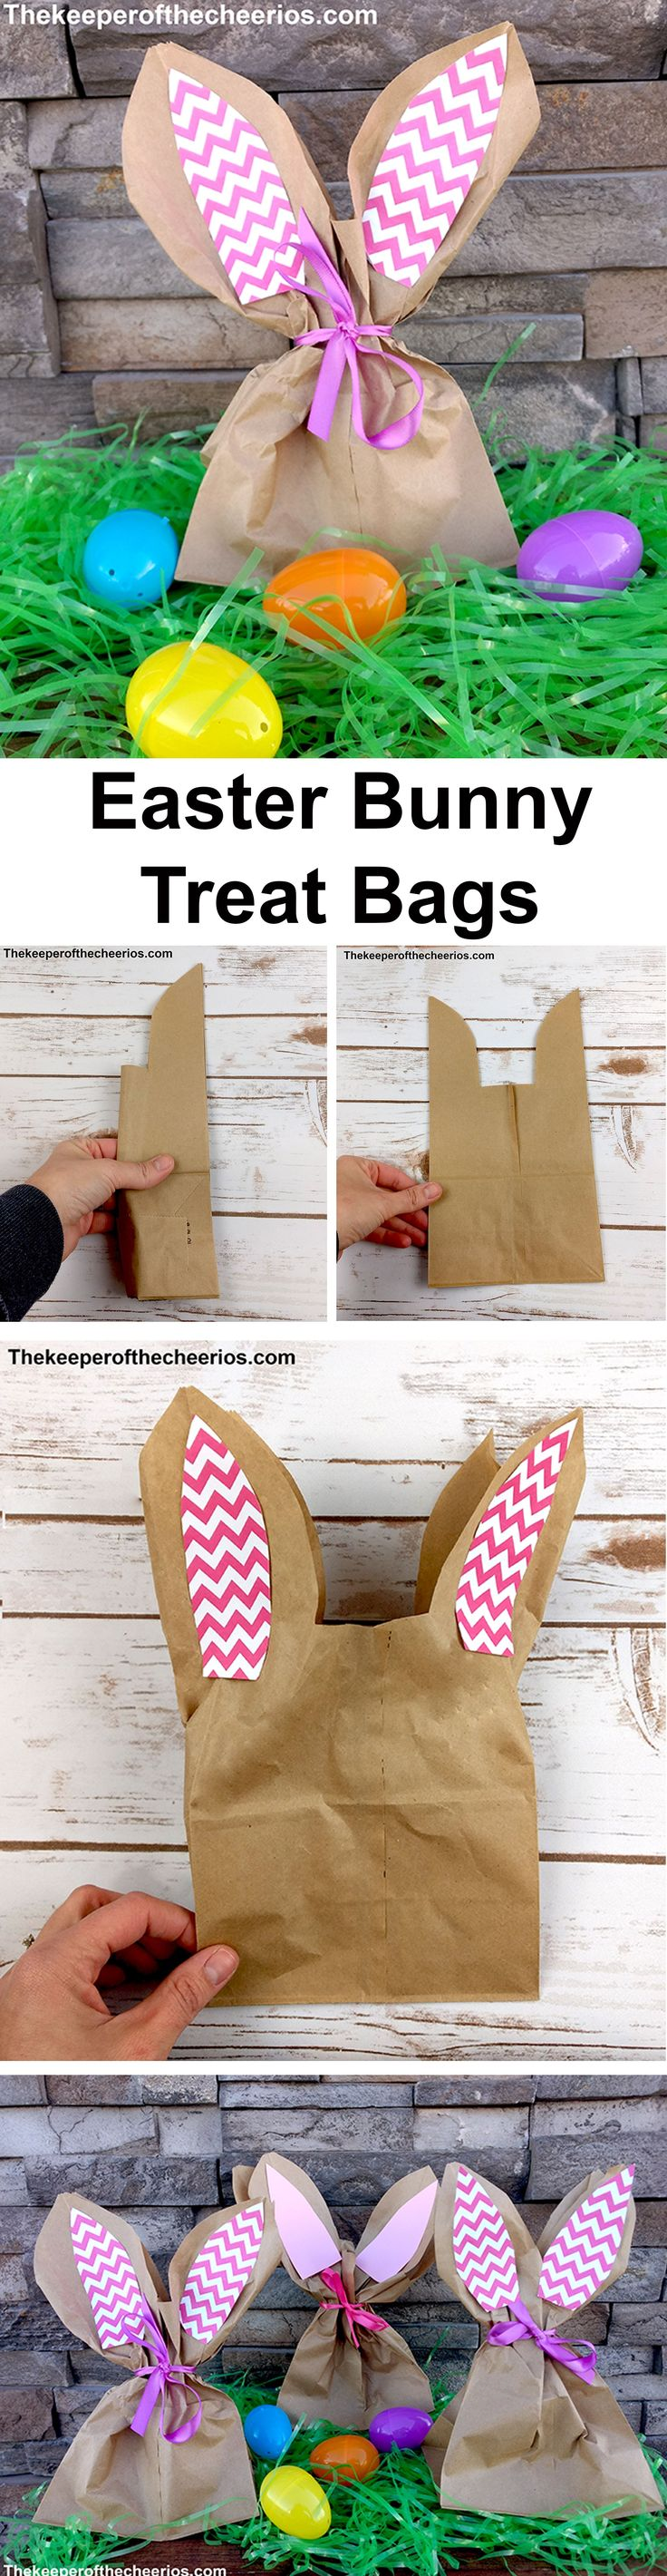 Easter Bunny Treat Bags Materials: Paper lunch bags Pink card stock (pain or designed) or construction paper Glue stick Ribbon Scissors Directions: Fold lunch bag in half (hot dog style) Trim the top half of the bag from the outside point down towards the center (about a 1/4 of the way down) then cut straight across Open bag up Take both outer ear pieces and open them up flattening out the ears Cut out 2 inside ear pieces from your pink paper Glue onto the paper bag ears Fill bag with tr...